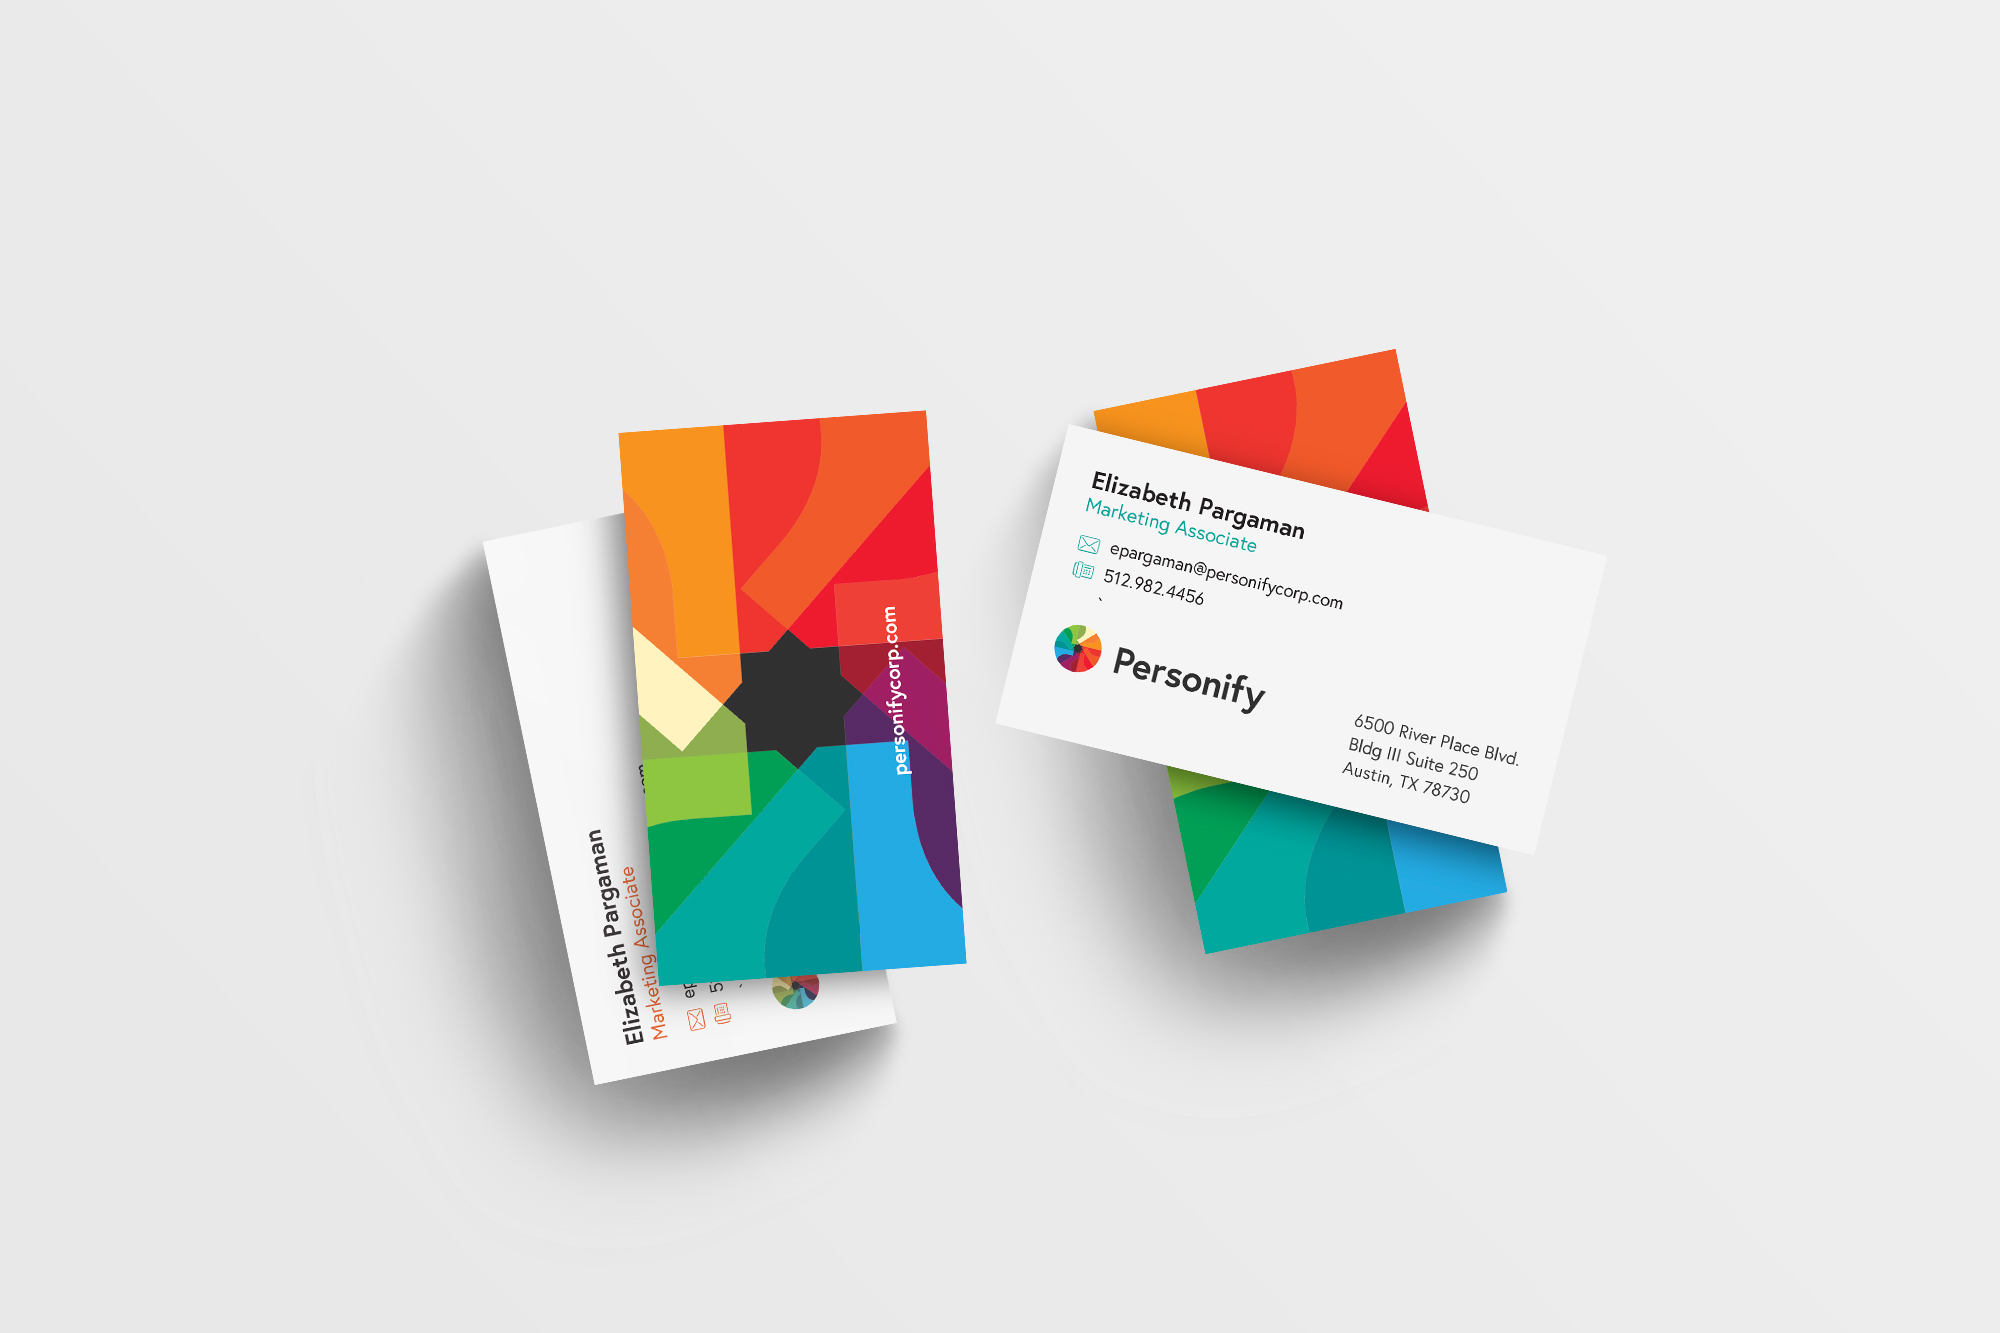 Personify_BusinessCard